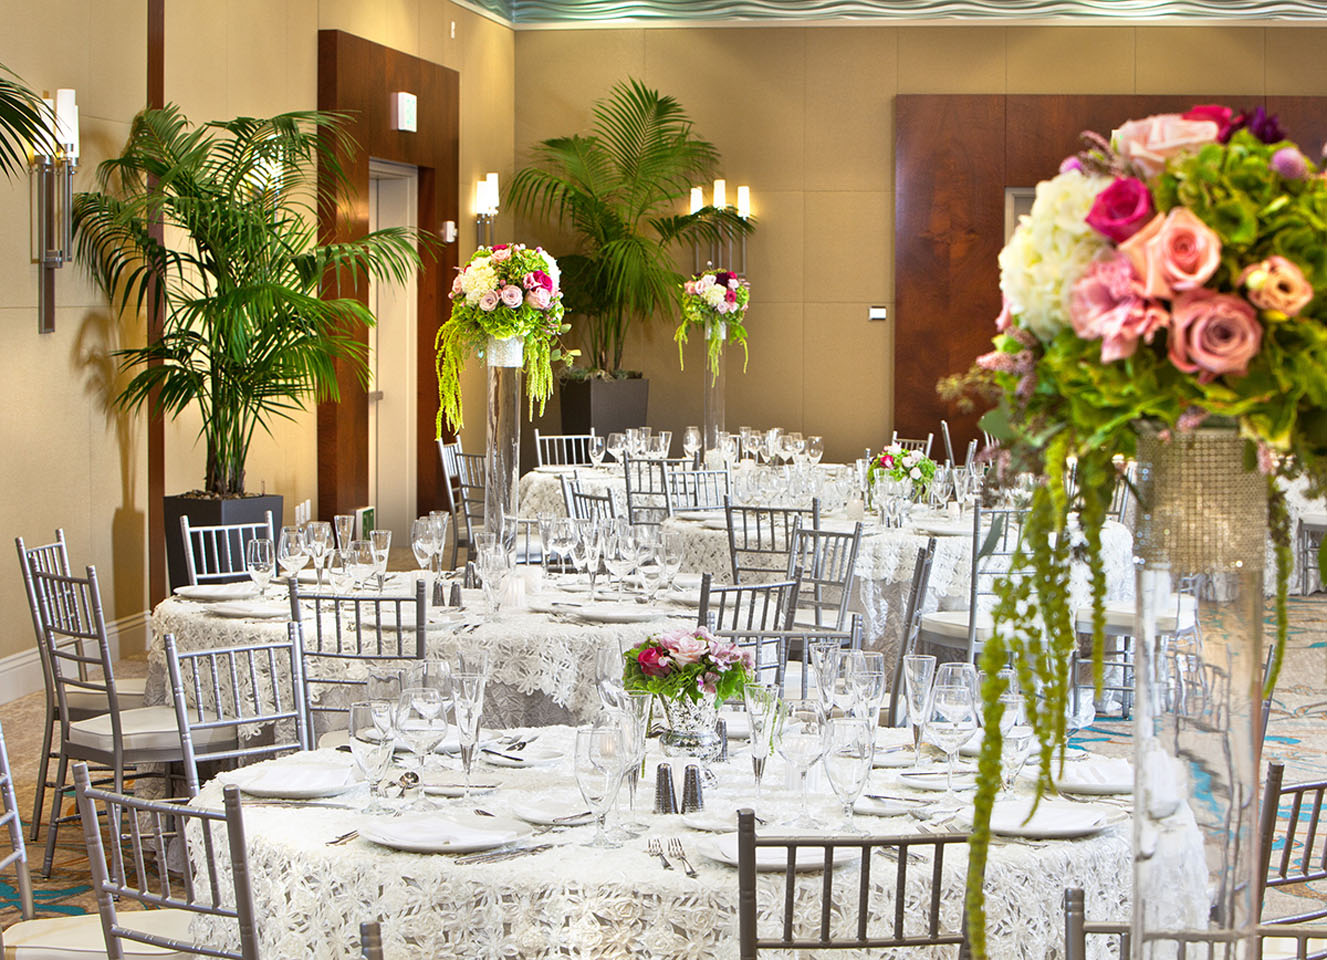 Wedding reception venue in San Diego